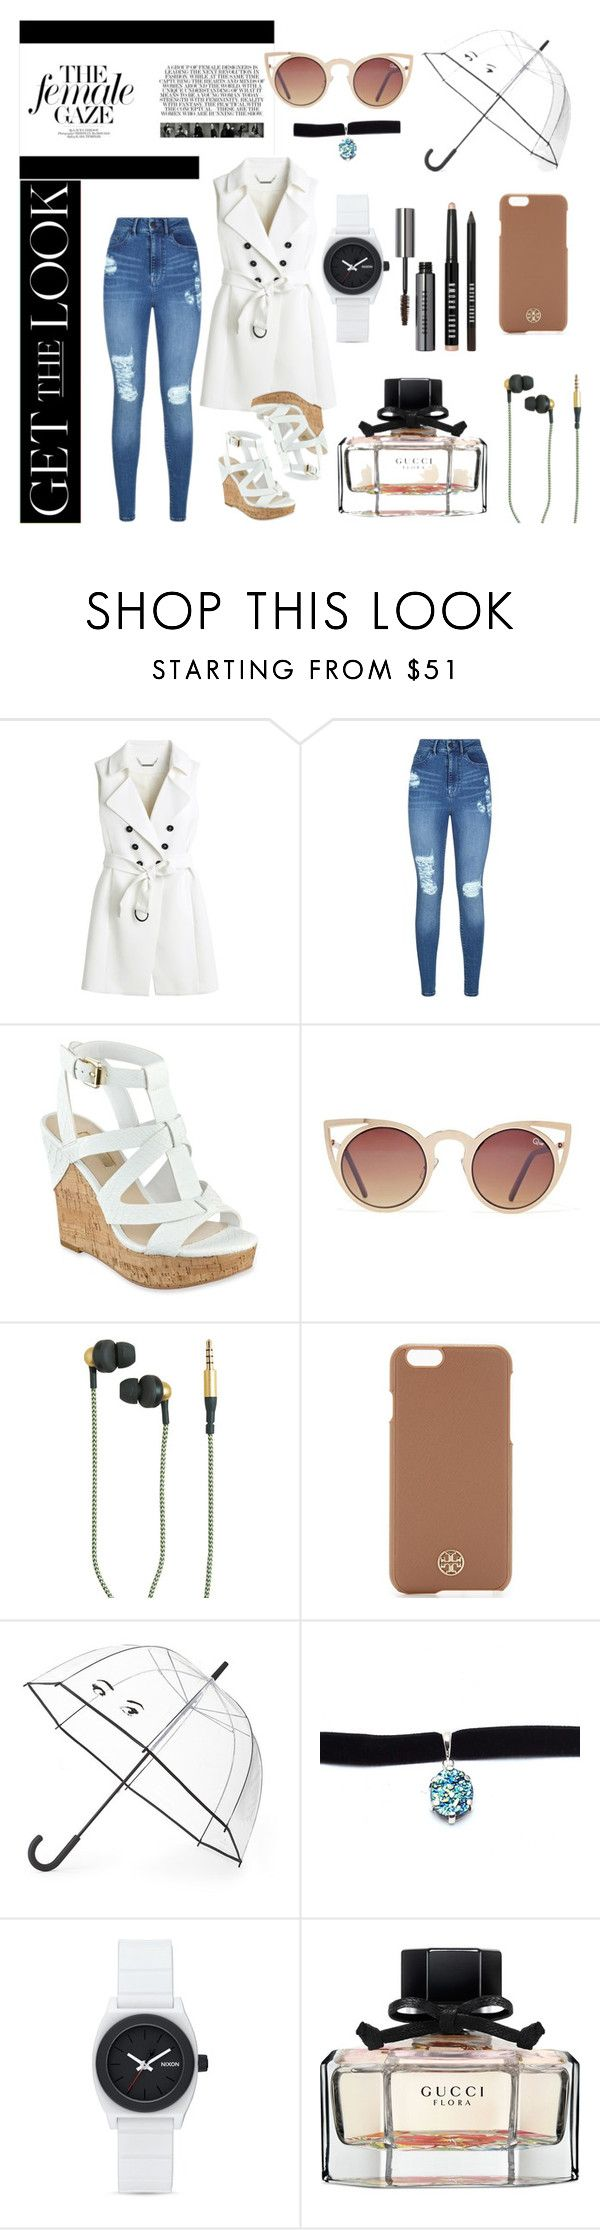 """Price tags doesn't matter"" by blackheaven on Polyvore featuring White House Black Market, Lipsy, GUESS, Quay, Kreafunk, Tory Burch, Kate Spade, Child Of Wild, Nixon and Gucci"